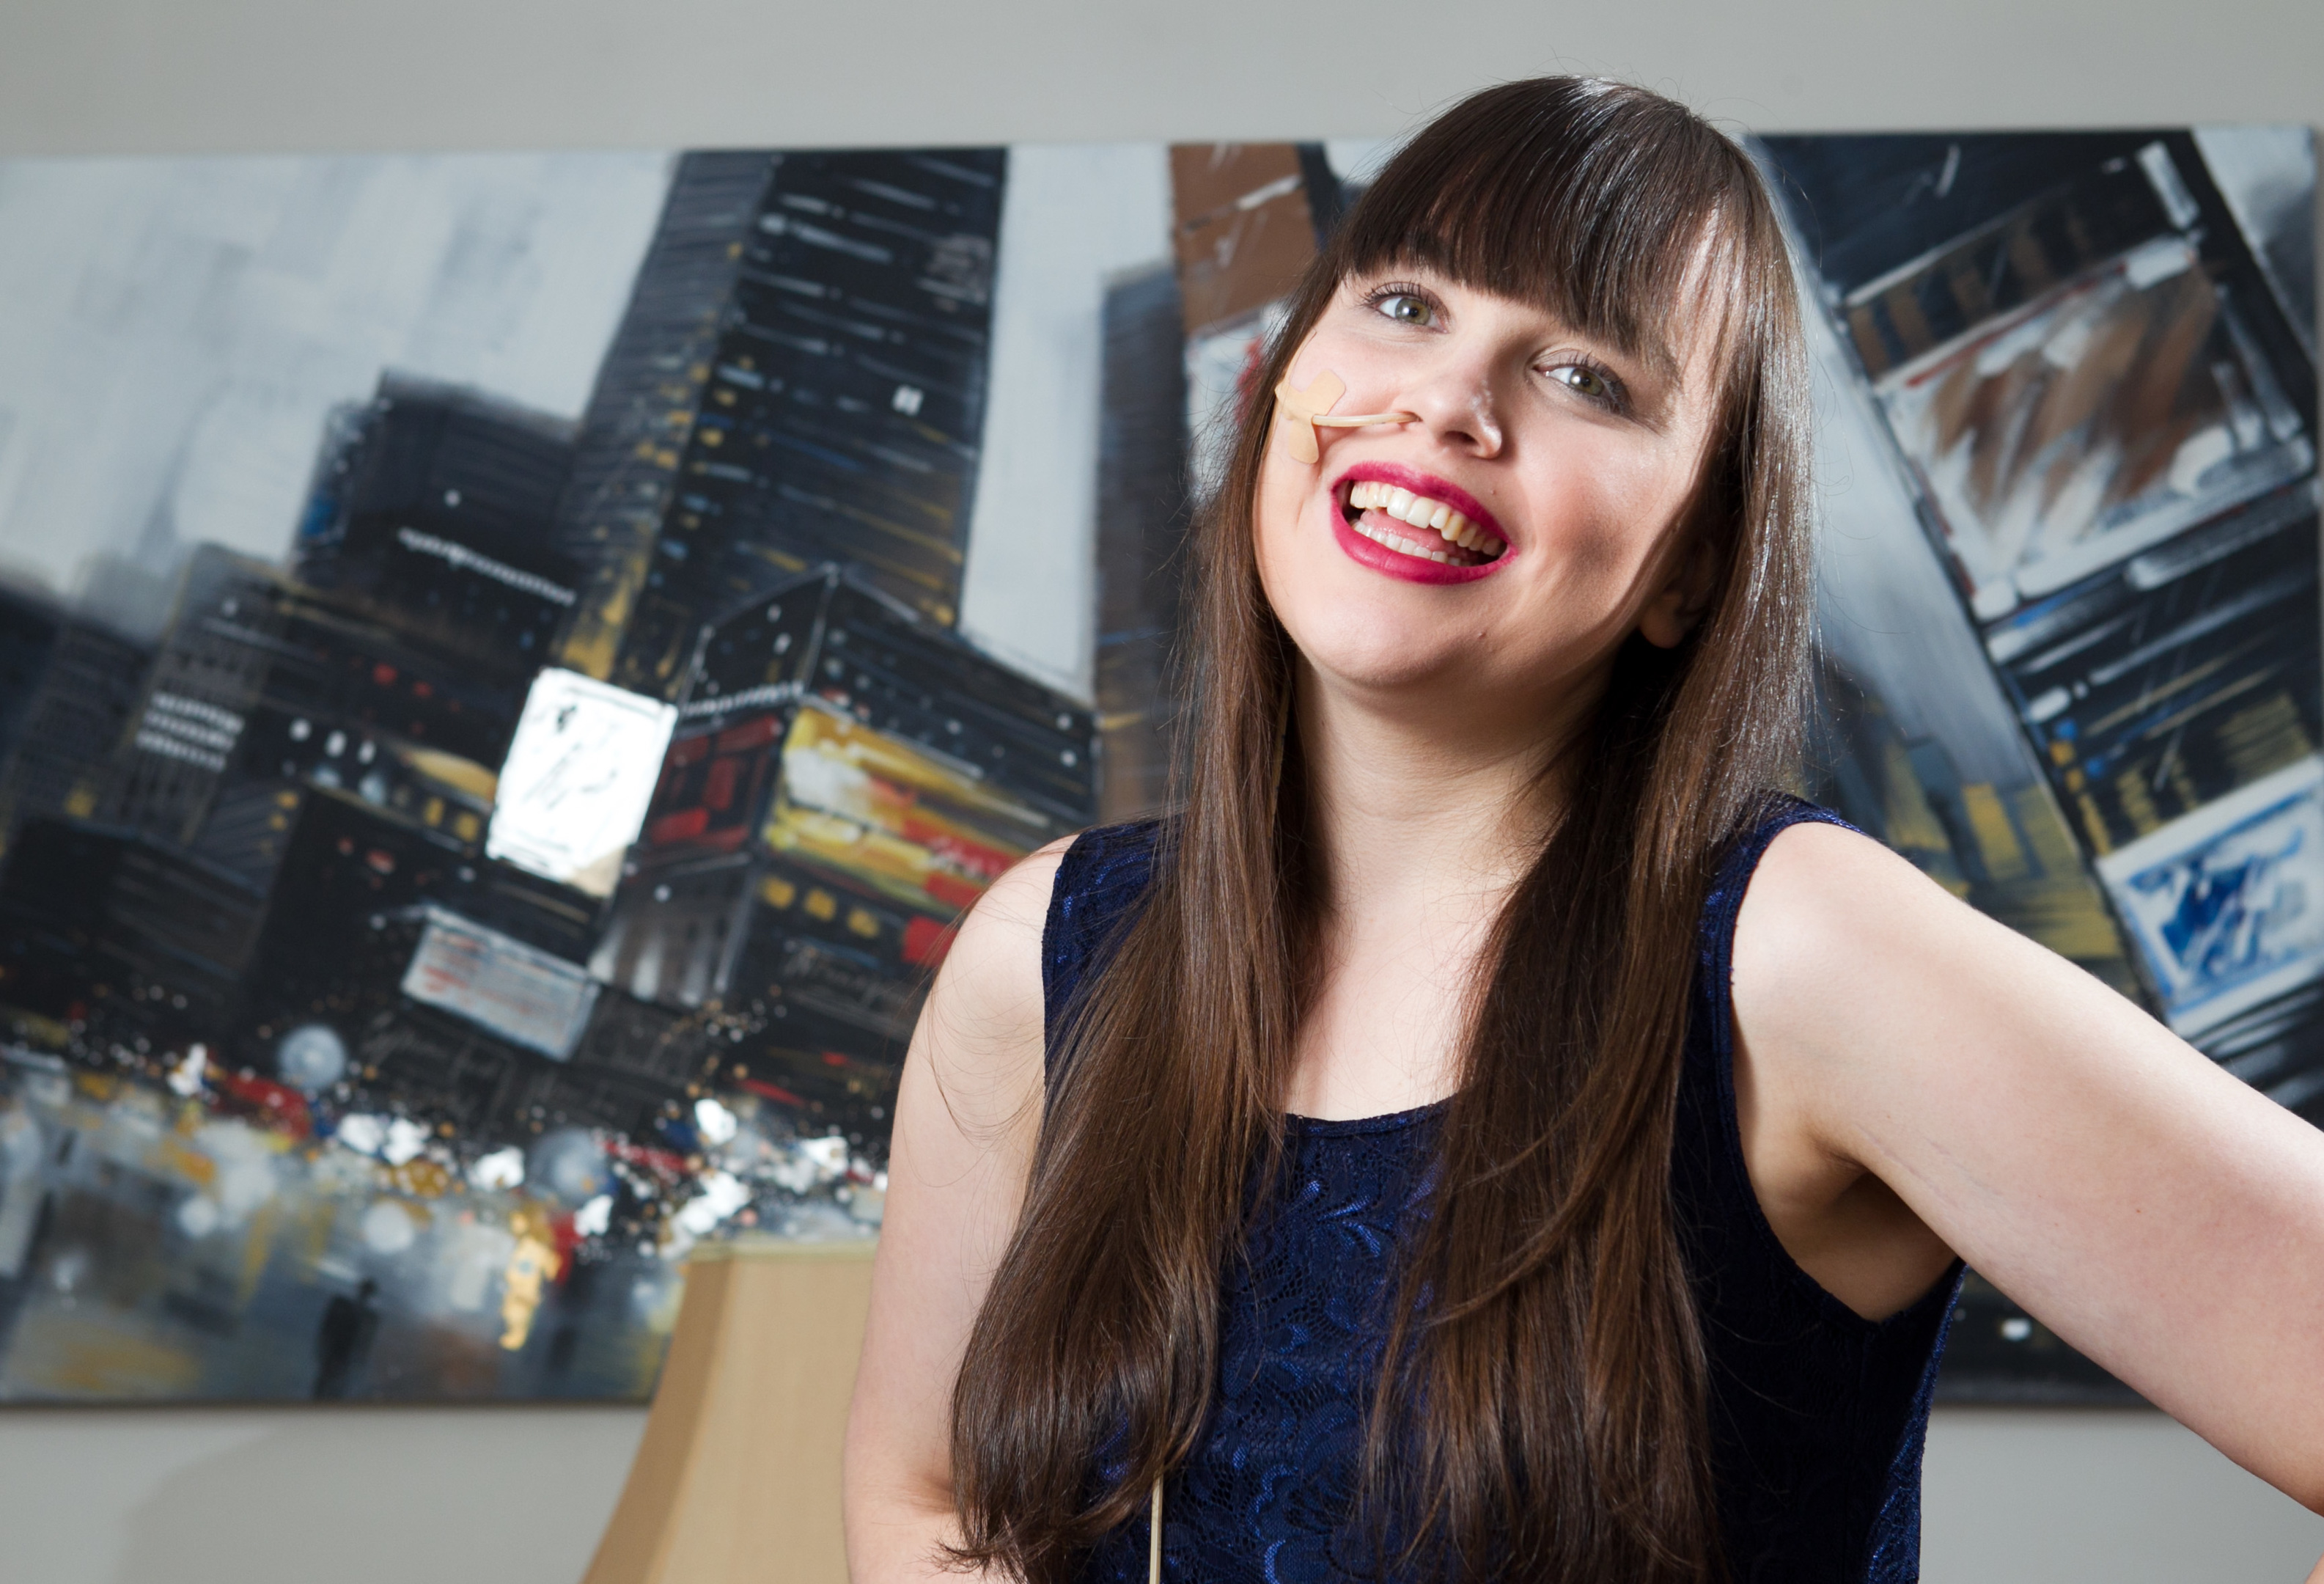 Nicole Gray, who is going to enter a beauty queen contest (Andrew Cawley/DC Thomson)